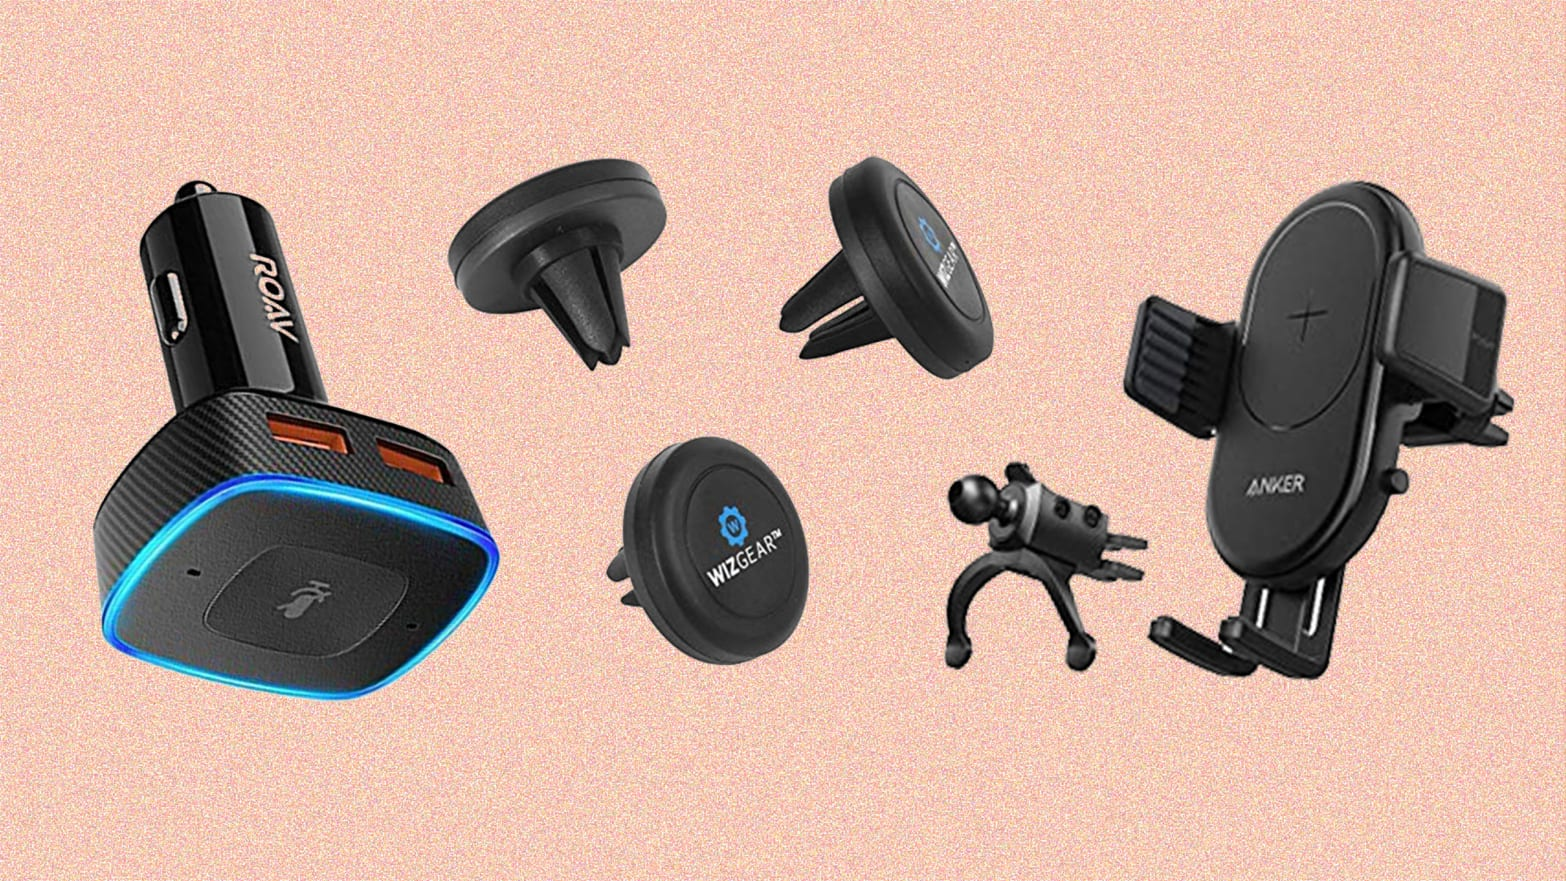 Phone Essentials for Drivers Who Want the Best On-the-Road Experiences